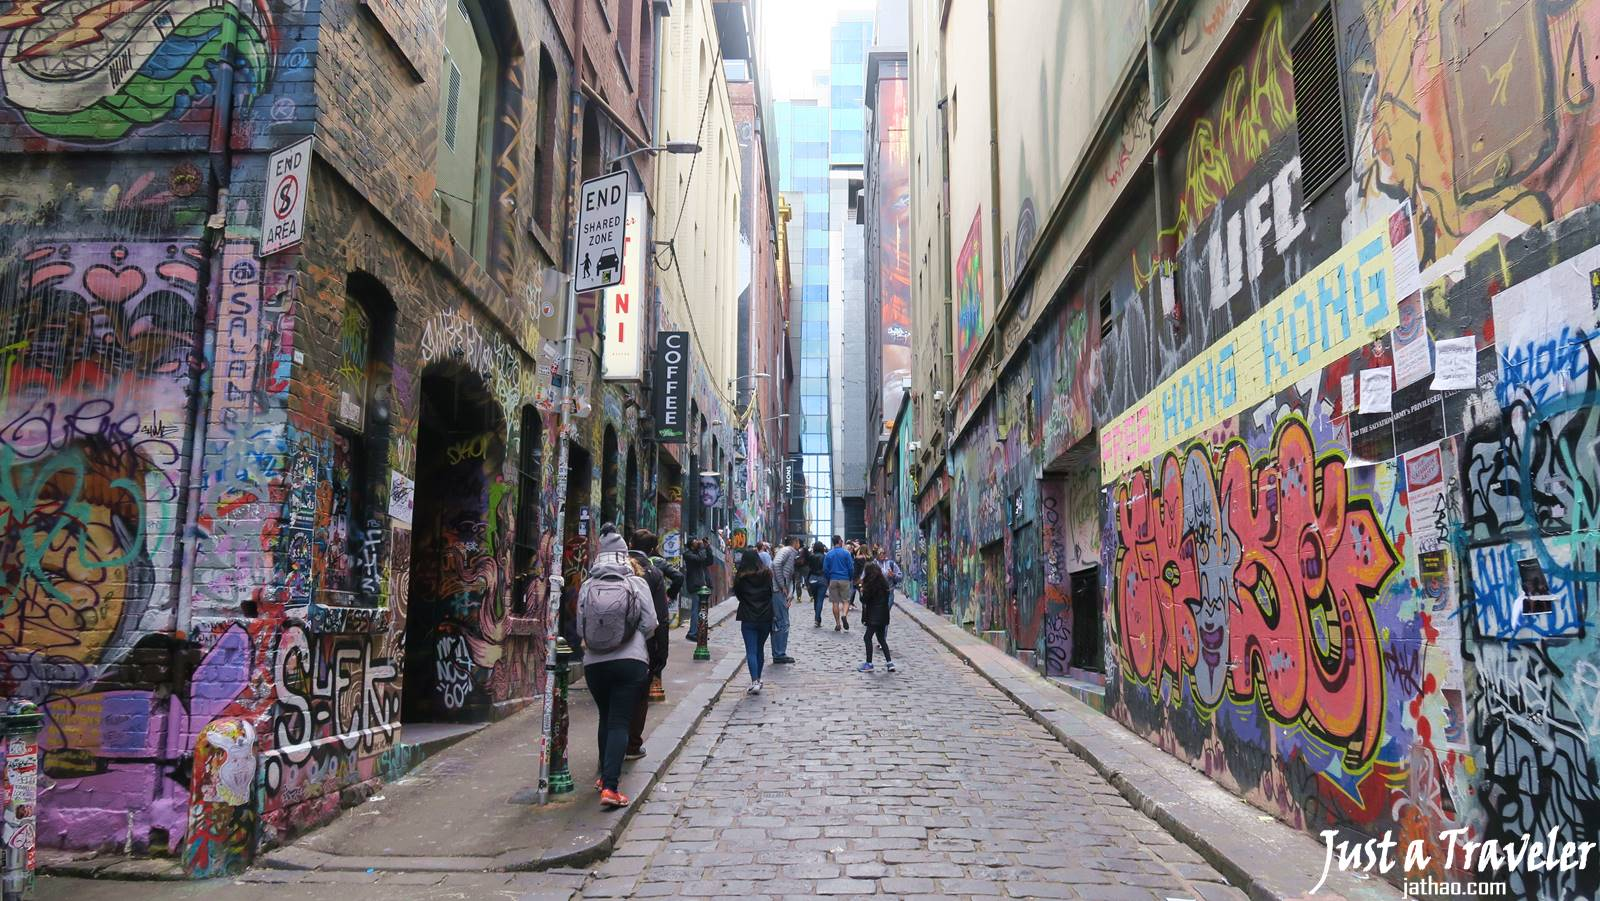 Melbourne-Hosier Lane-CBD-Attraction-Recommendation-Map-Itinerary-Tourism-Independent Travel-Travel Blog-Must visit-Must See